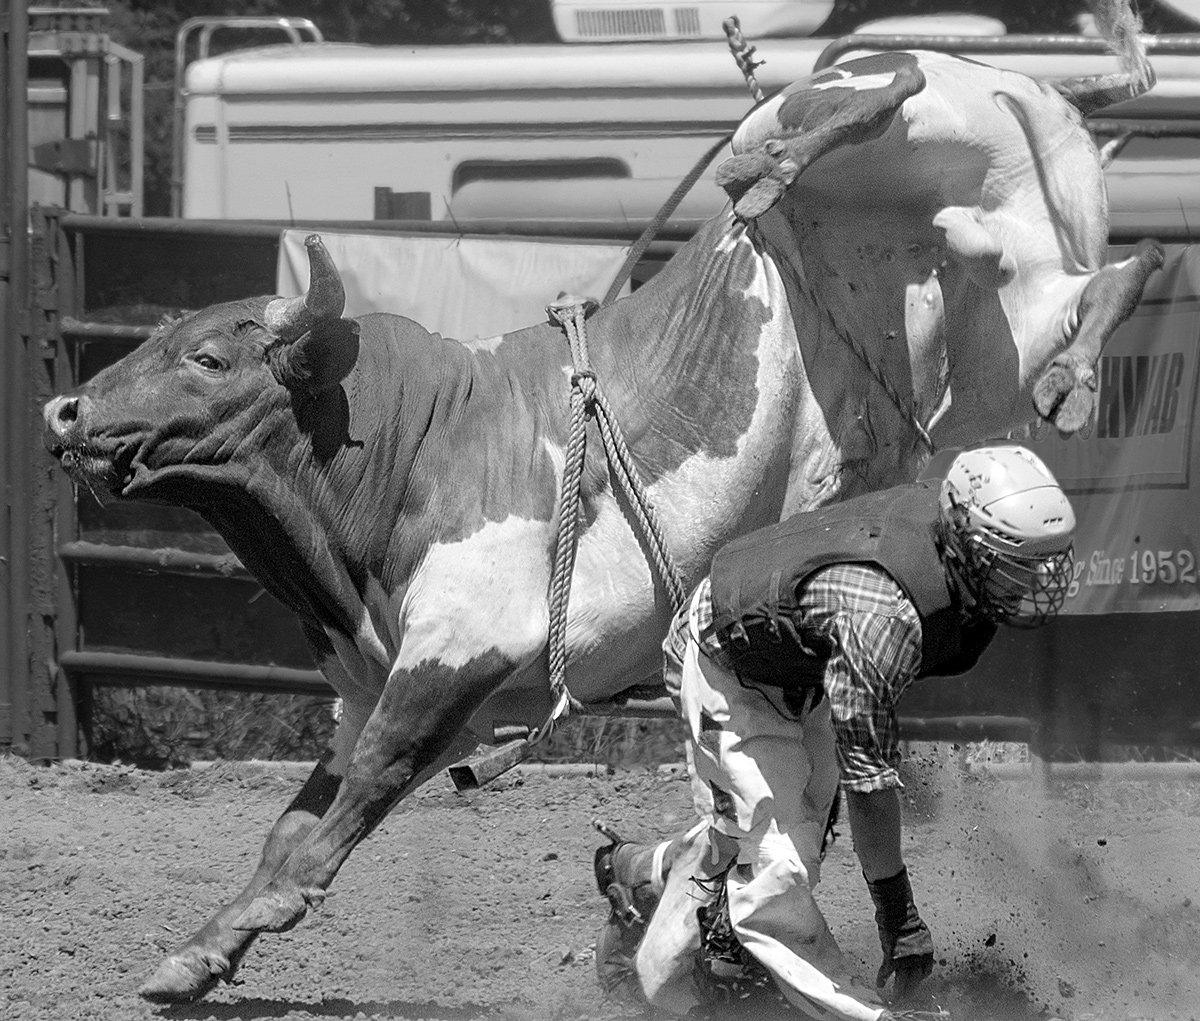 Rodeo USA - What Are These Bull Riders Thinking?